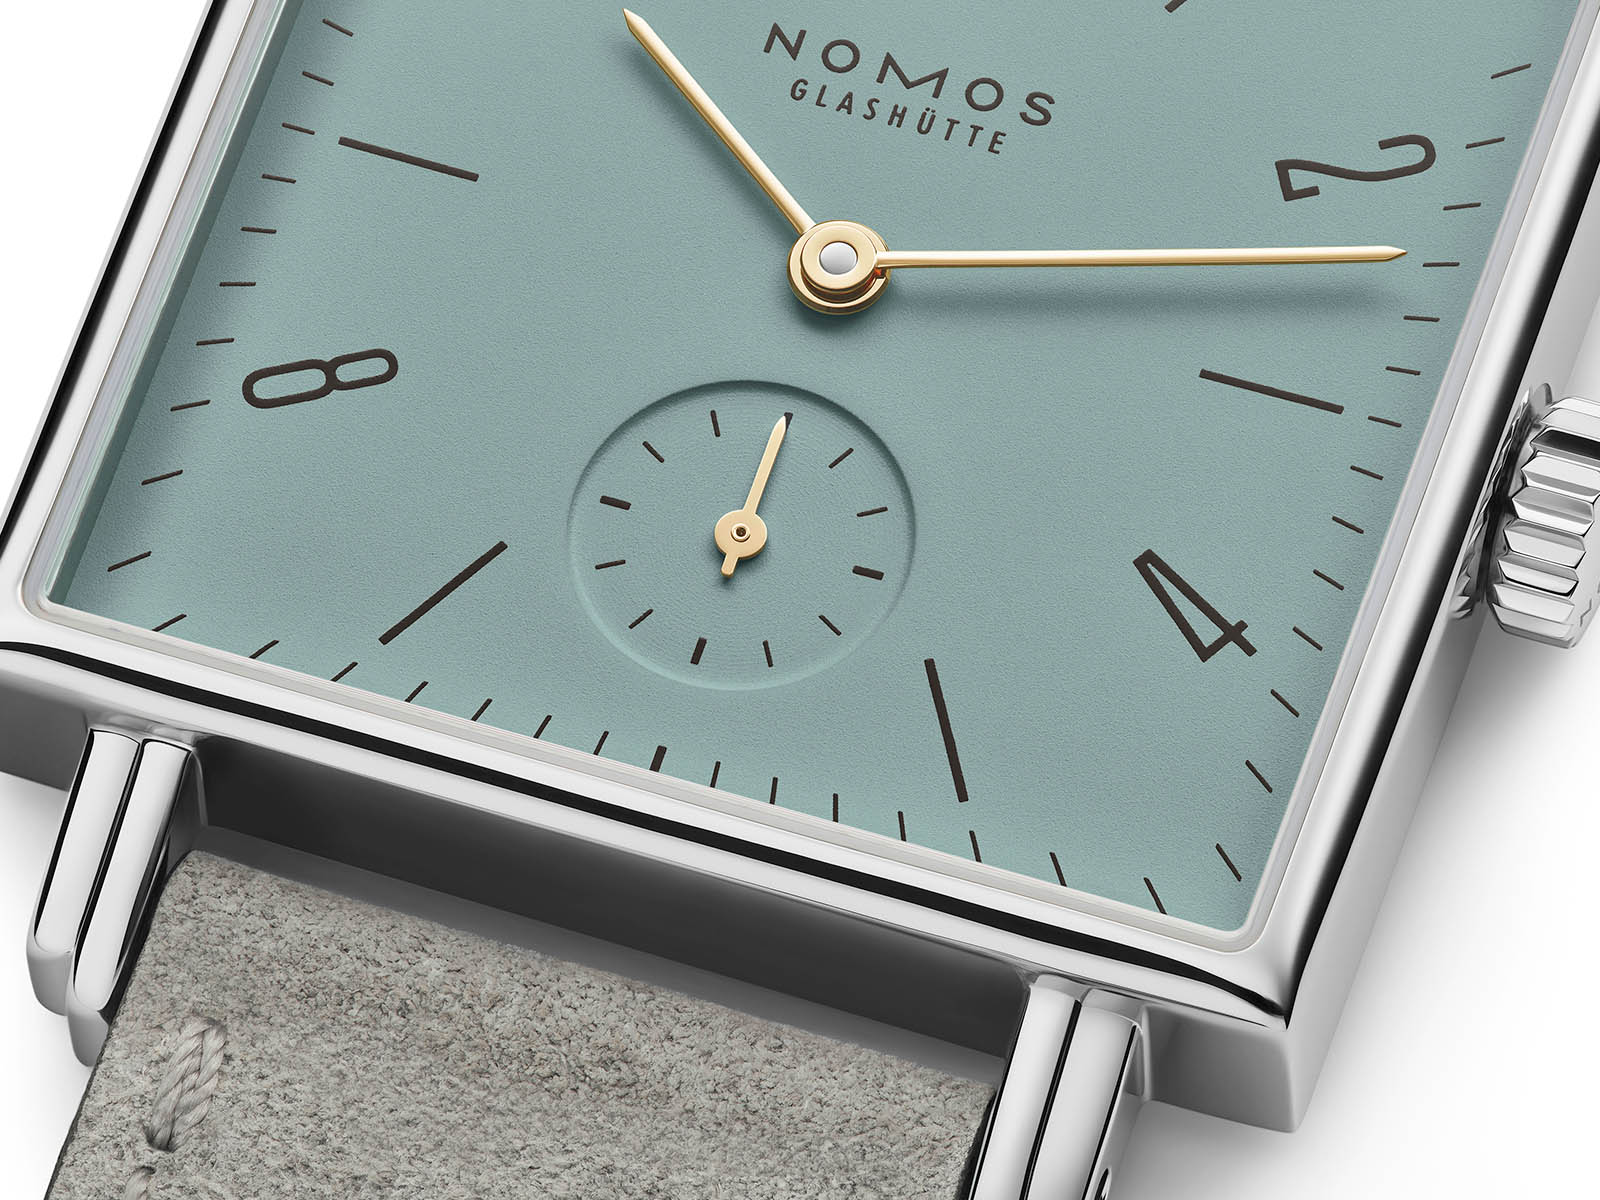 nomos-glashutte-tetra-symphony-collection-9.jpg